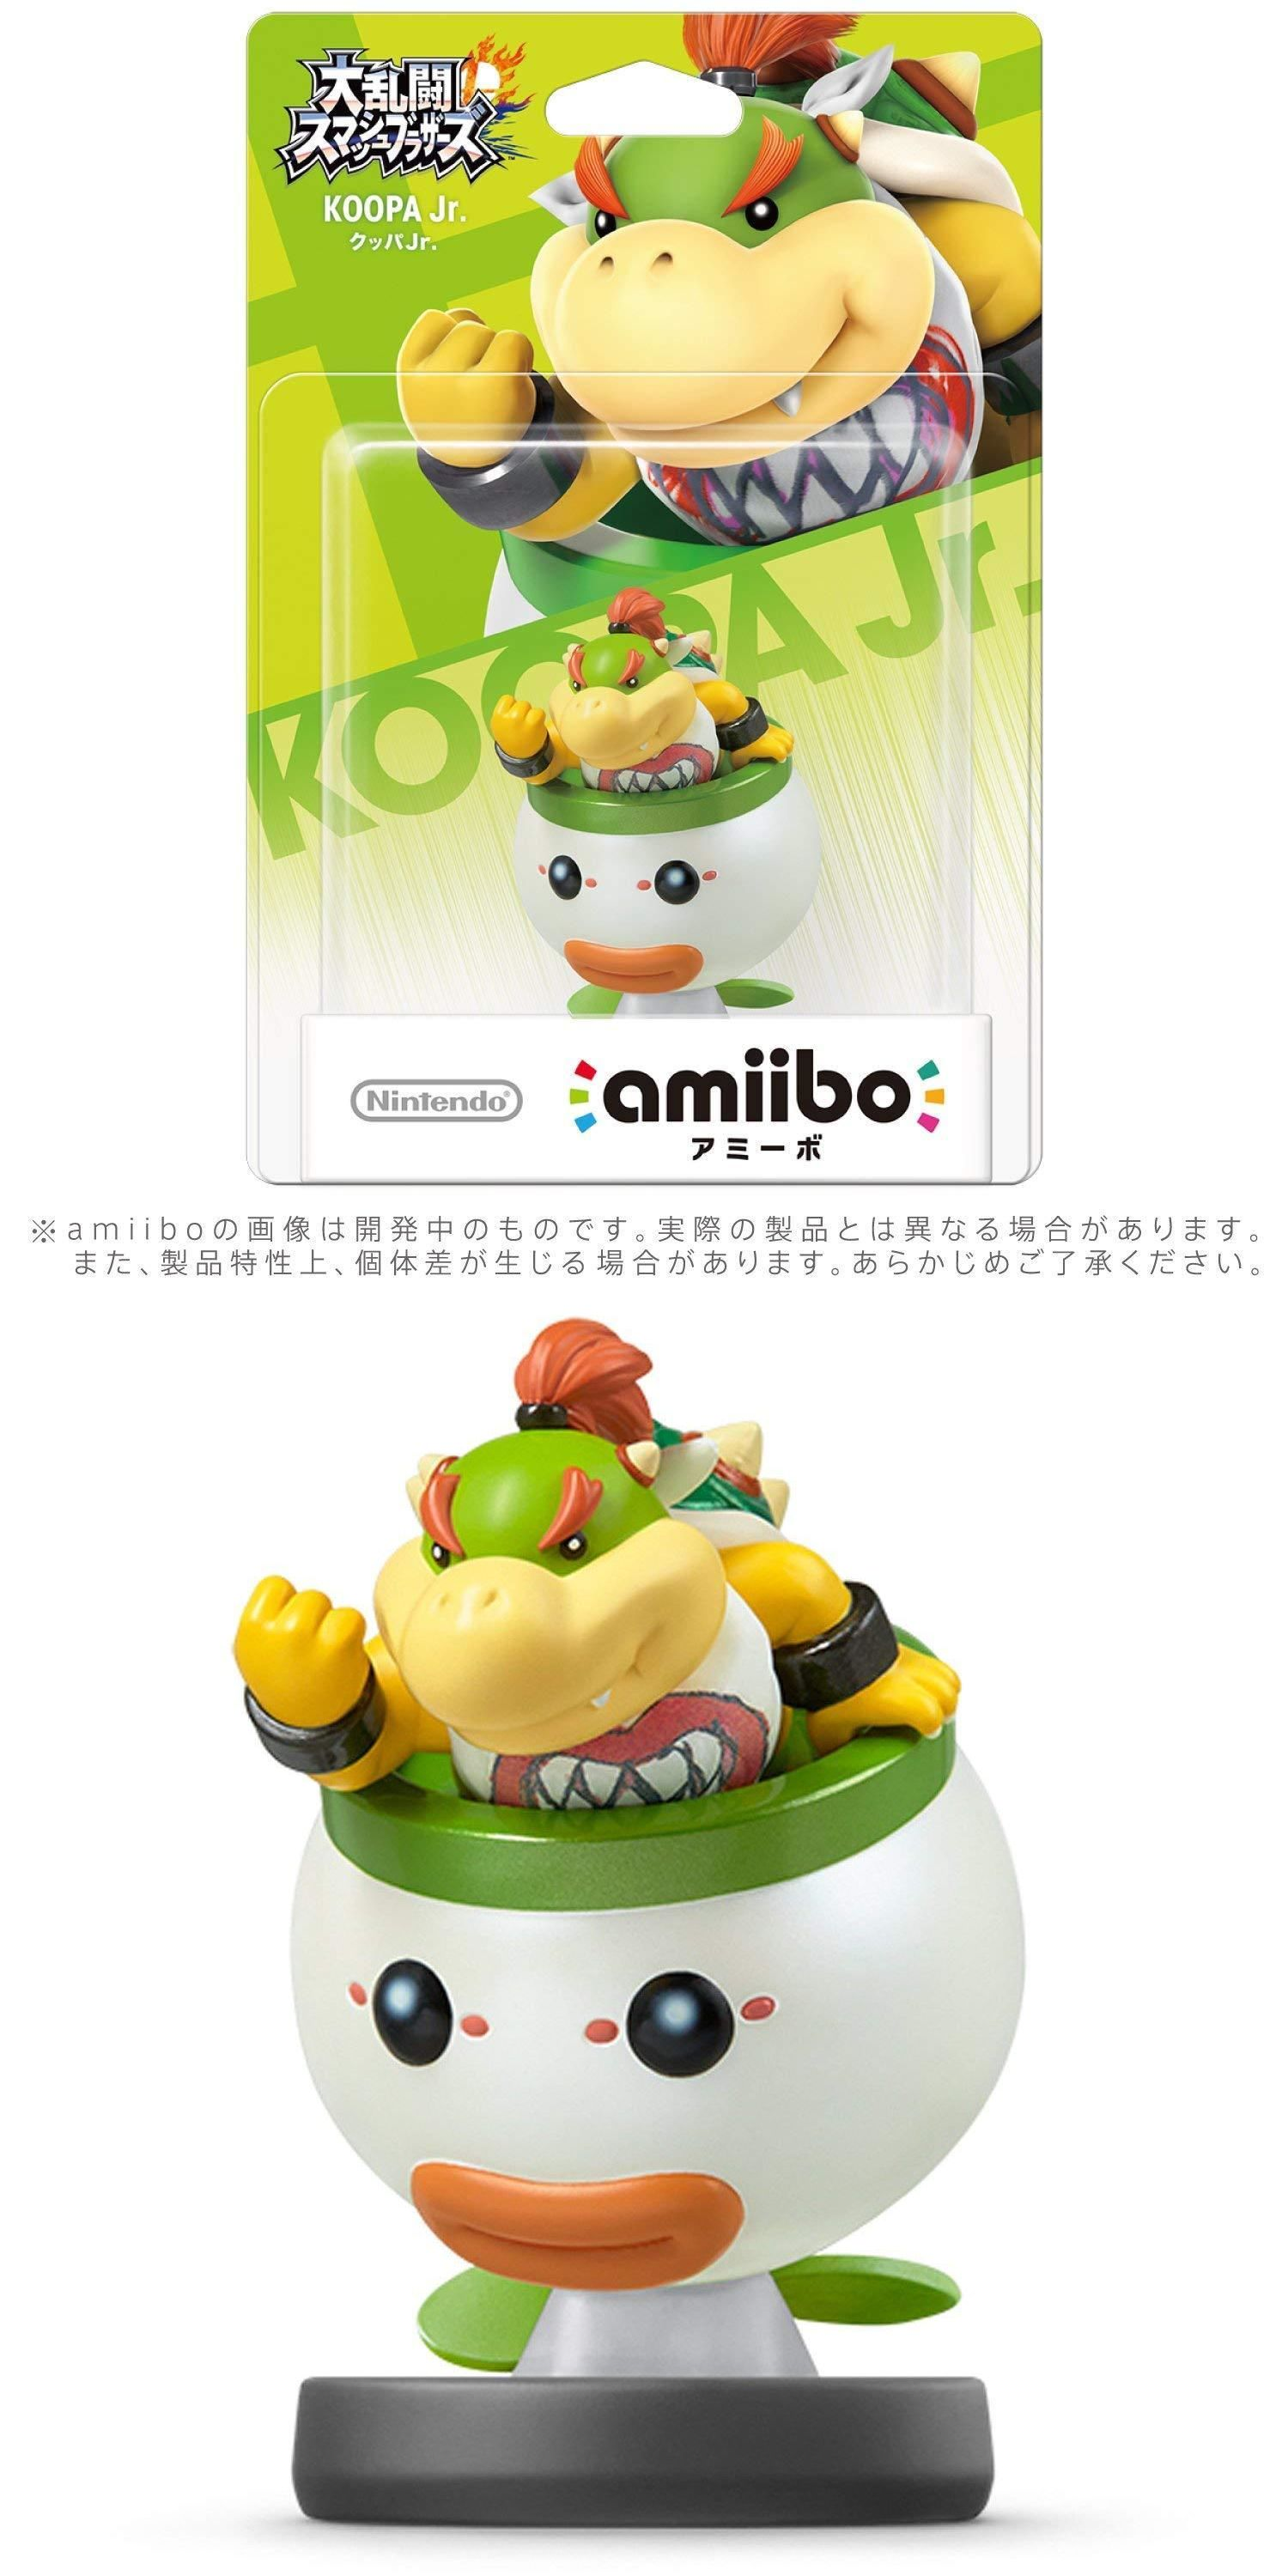 Toys To Life 182180 Limited Offer Nintendo Amiibo Koppa Kuppa Jr